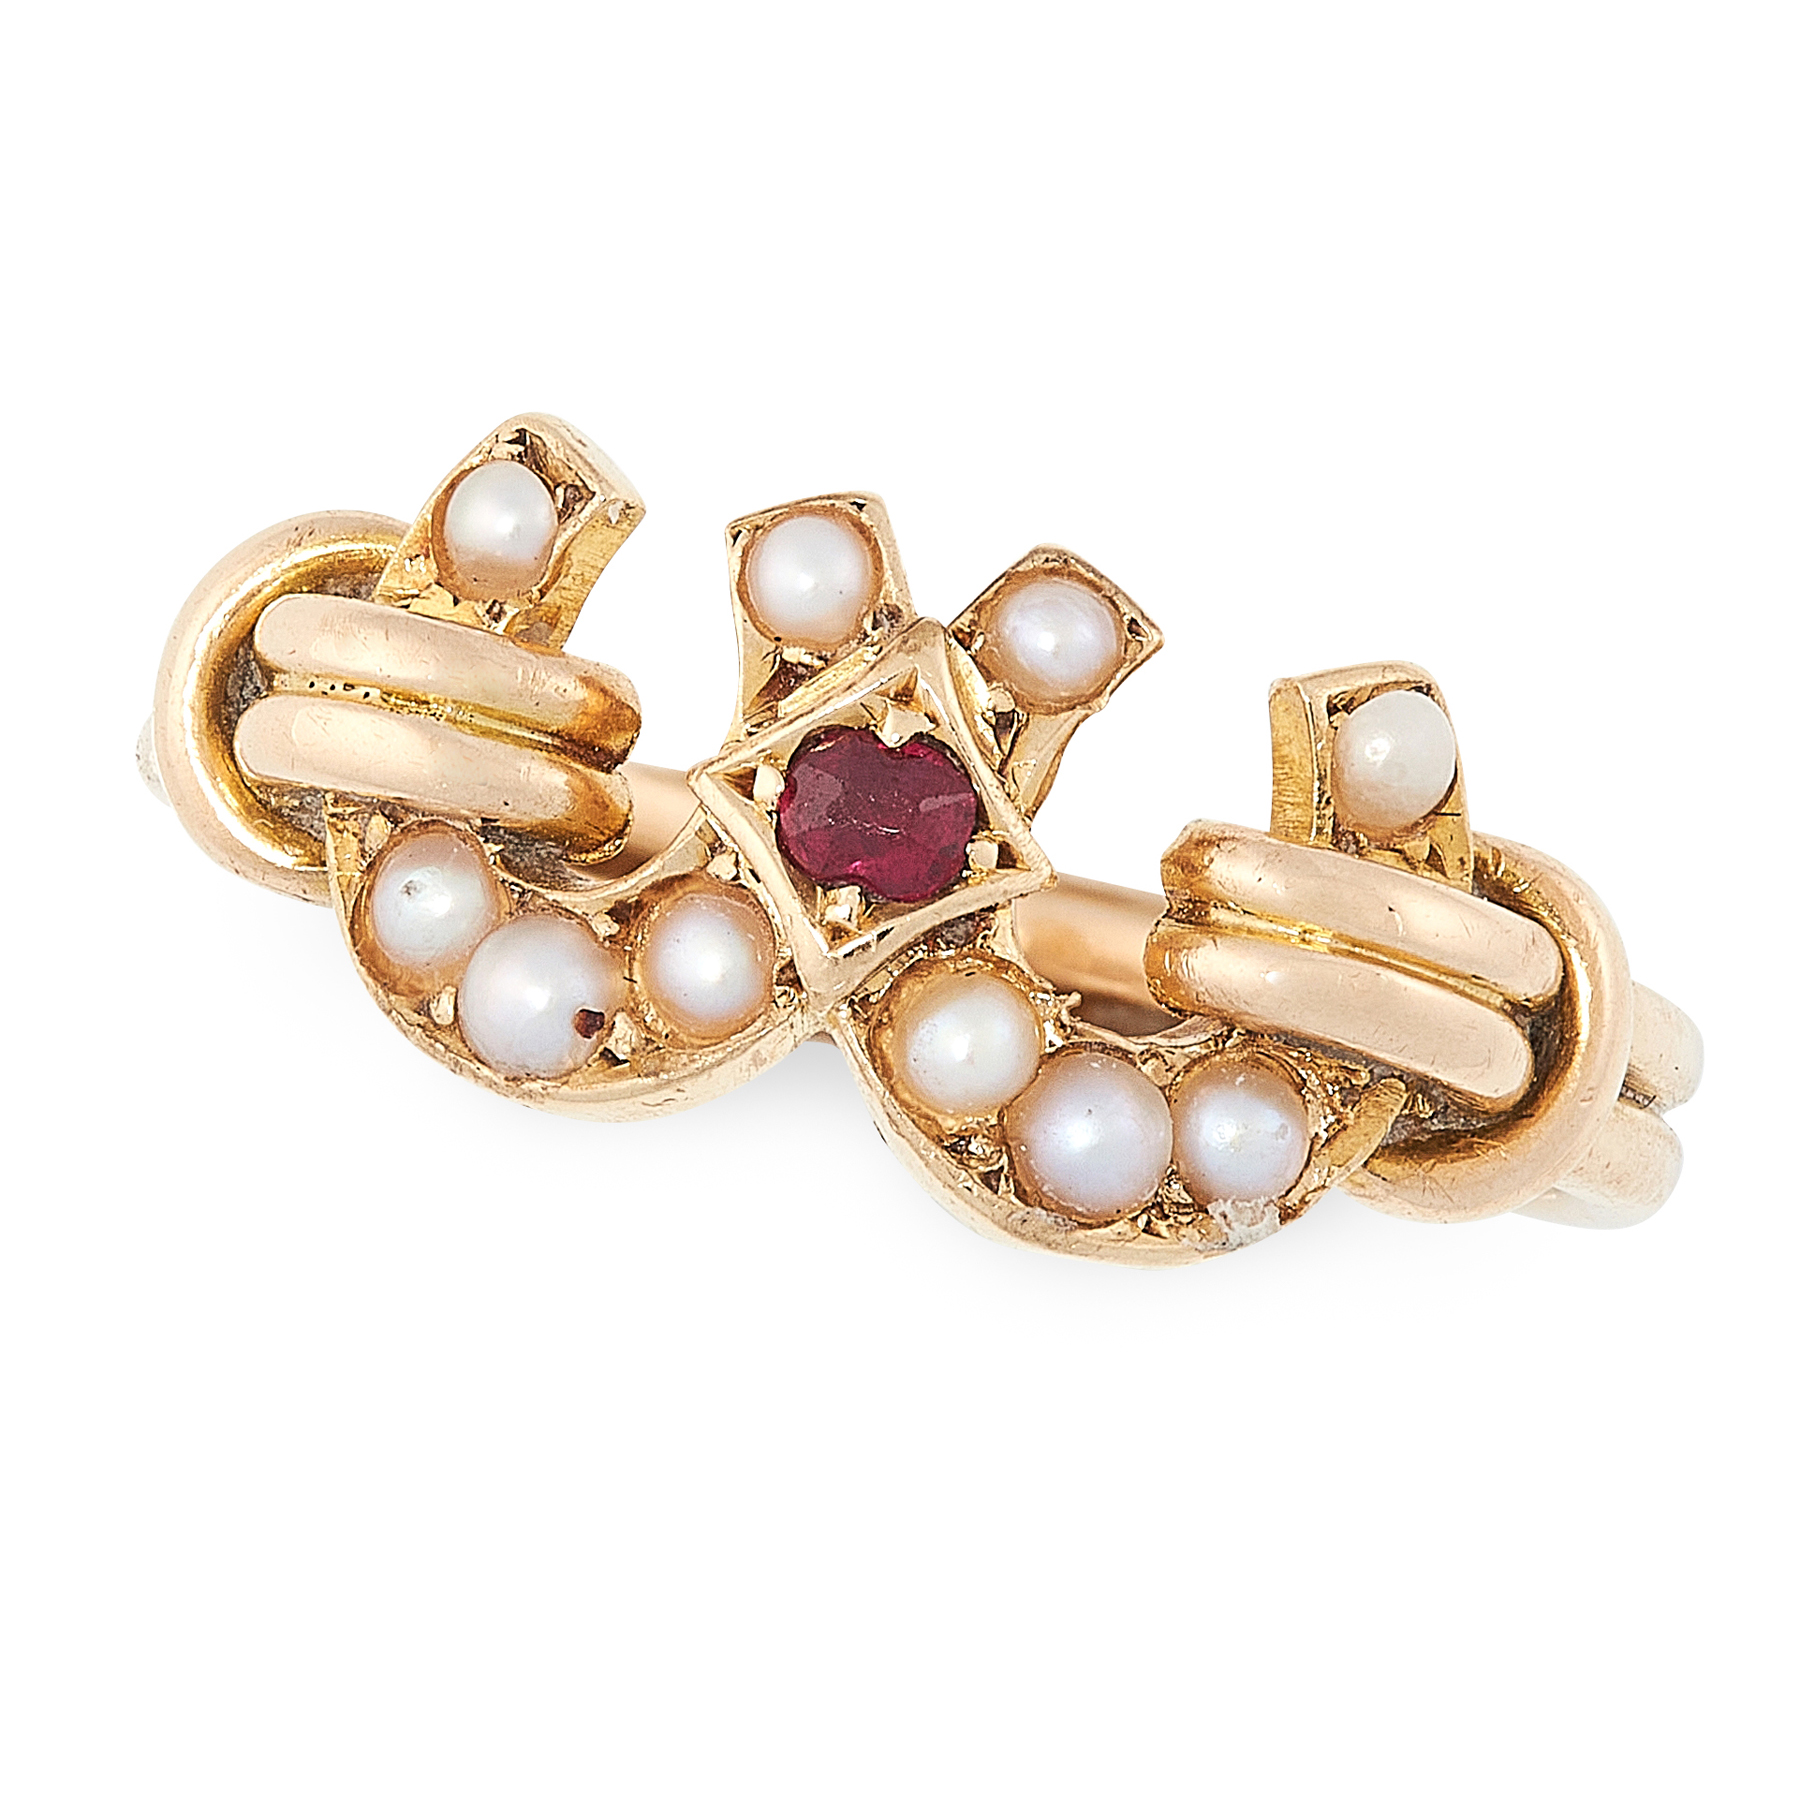 AN ANTIQUE VICTORIAN GARNET AND PEARL RING in 15ct yellow gold, designed as two interlinked